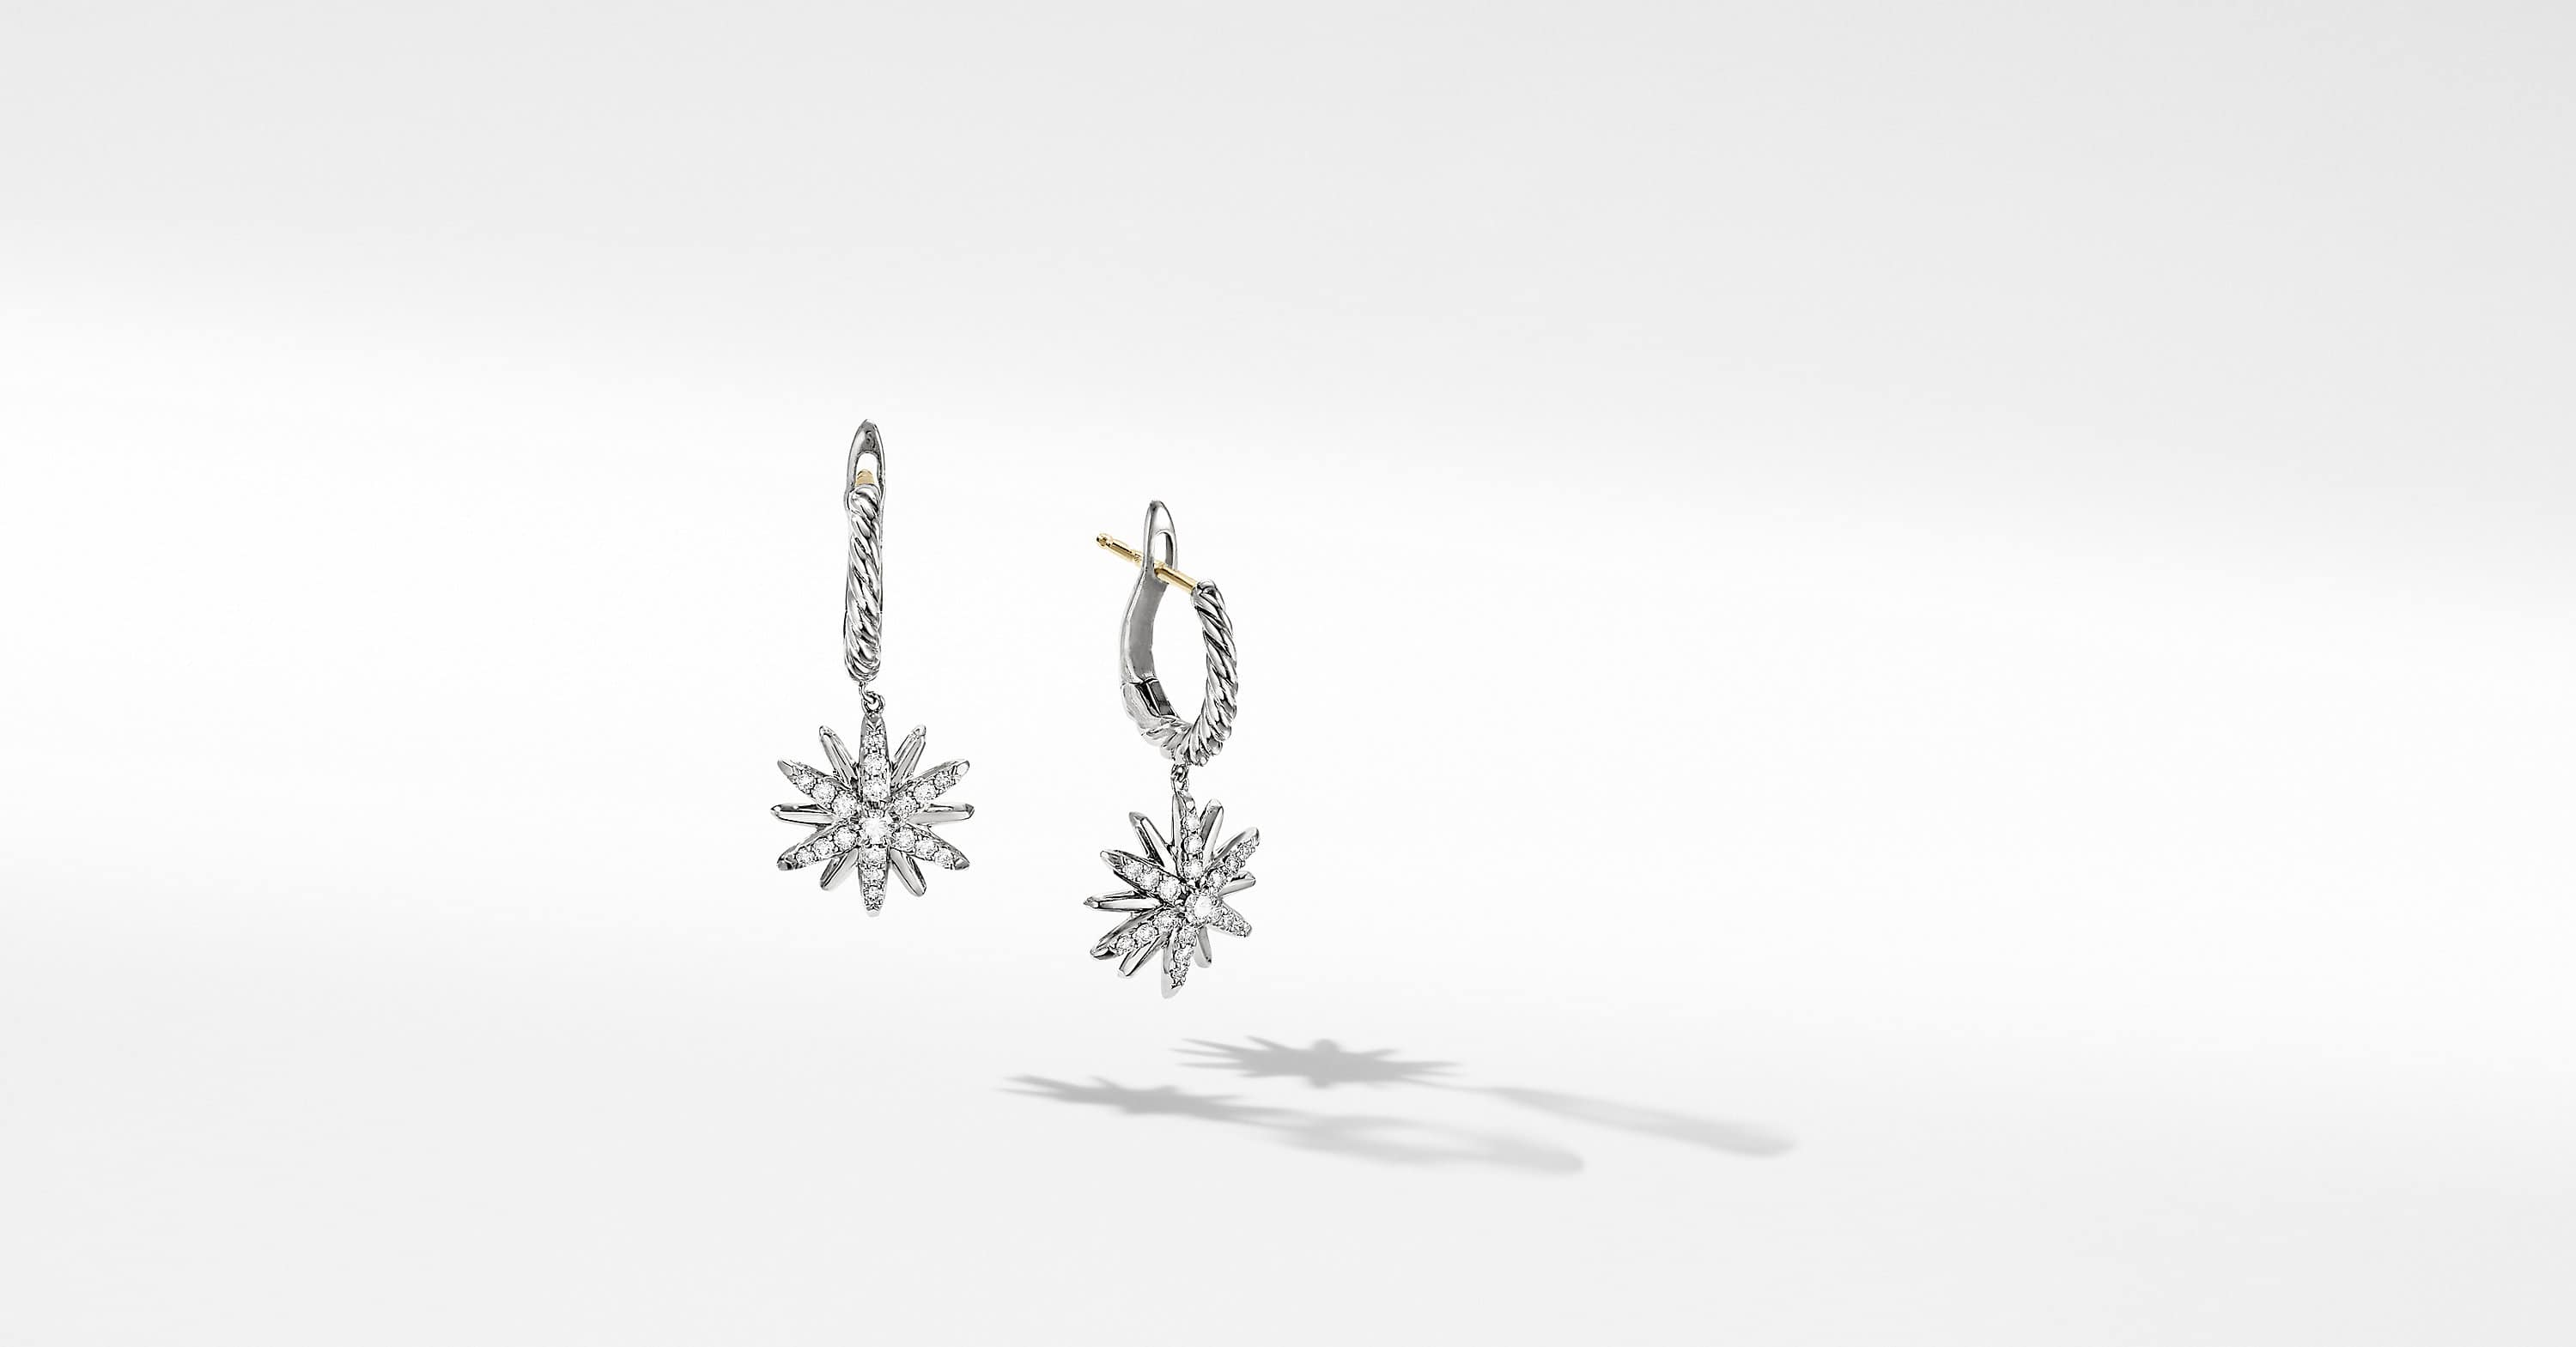 Starburst Drop Earrings with Diamonds, 13mm